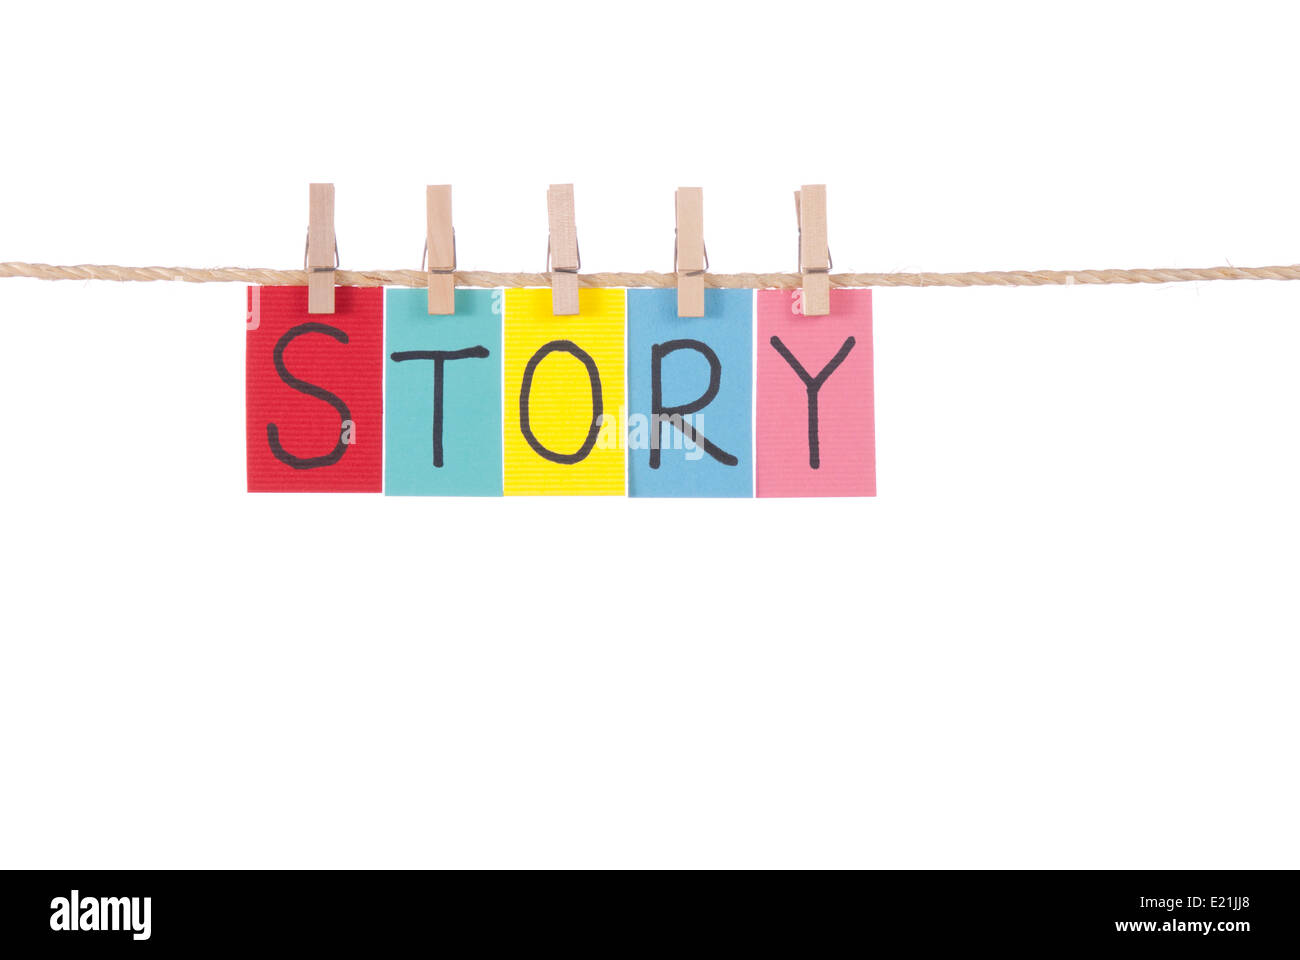 Story, Wooden peg  and colorful words - Stock Image